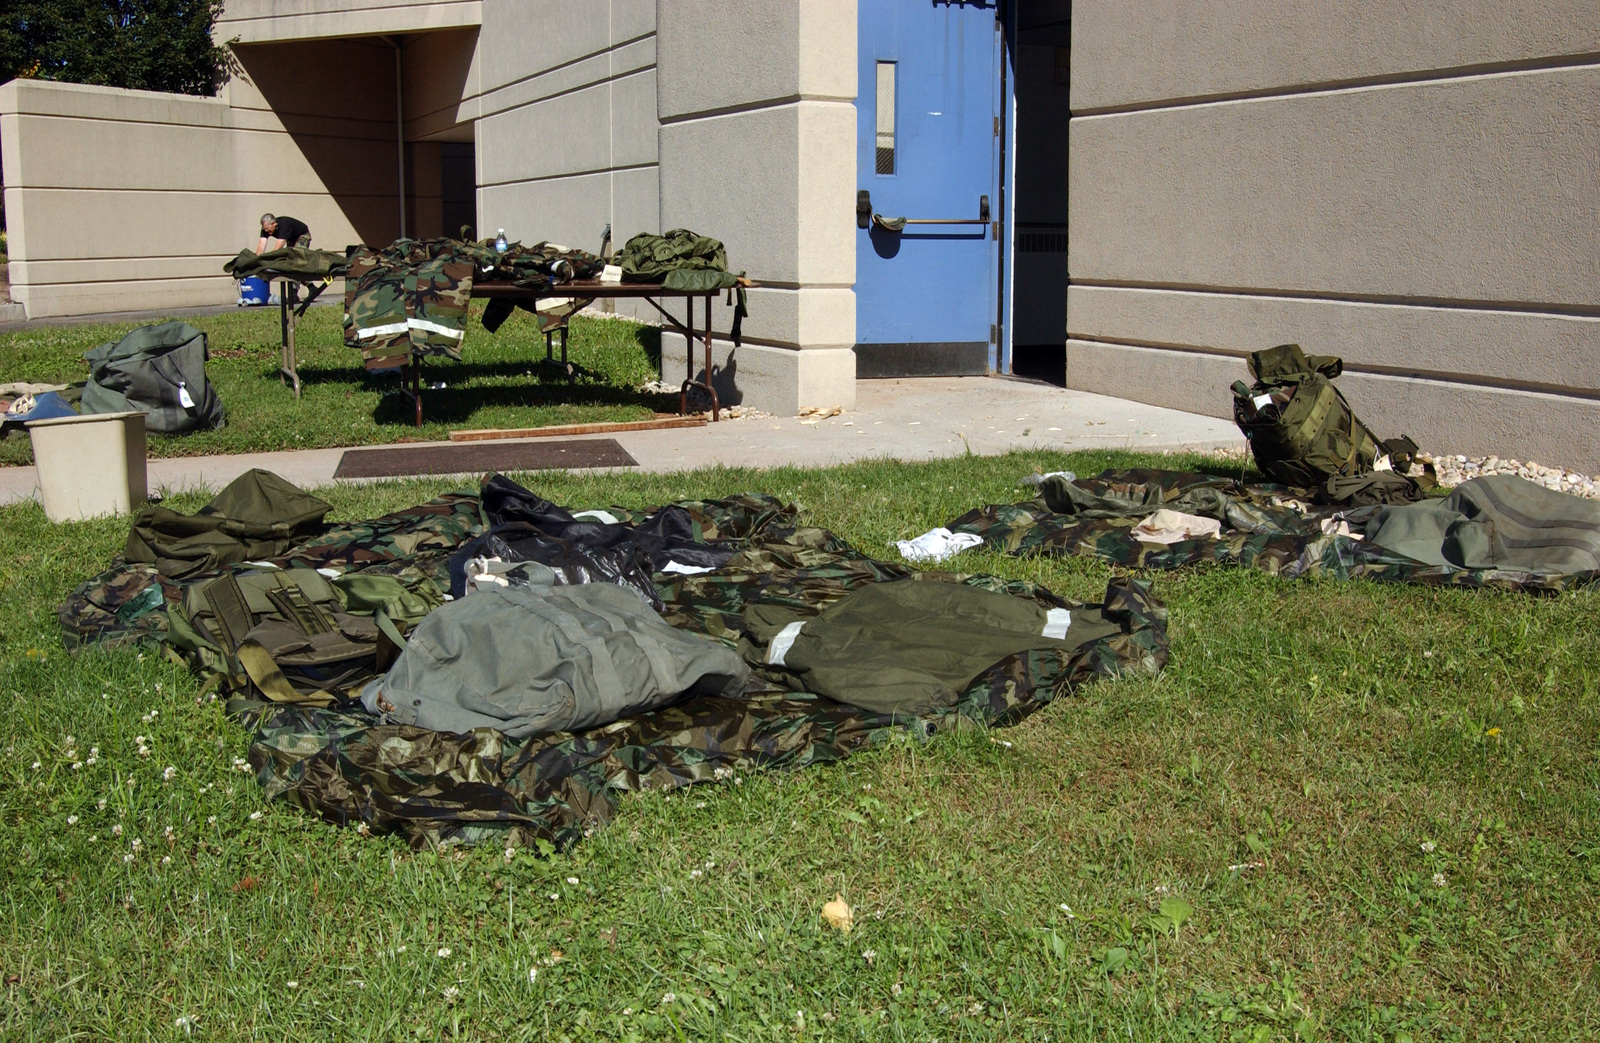 Wet equipment lies out to dry on Sept. 19, 2004, at the Pennsylvania Air National Guard 193rd Special Operations Wing building after the remnants of Hurricane Ivan pass through the area. (U.S. Air Force photo by SENIOR AIRMAN Matt Schwartz) (Released)